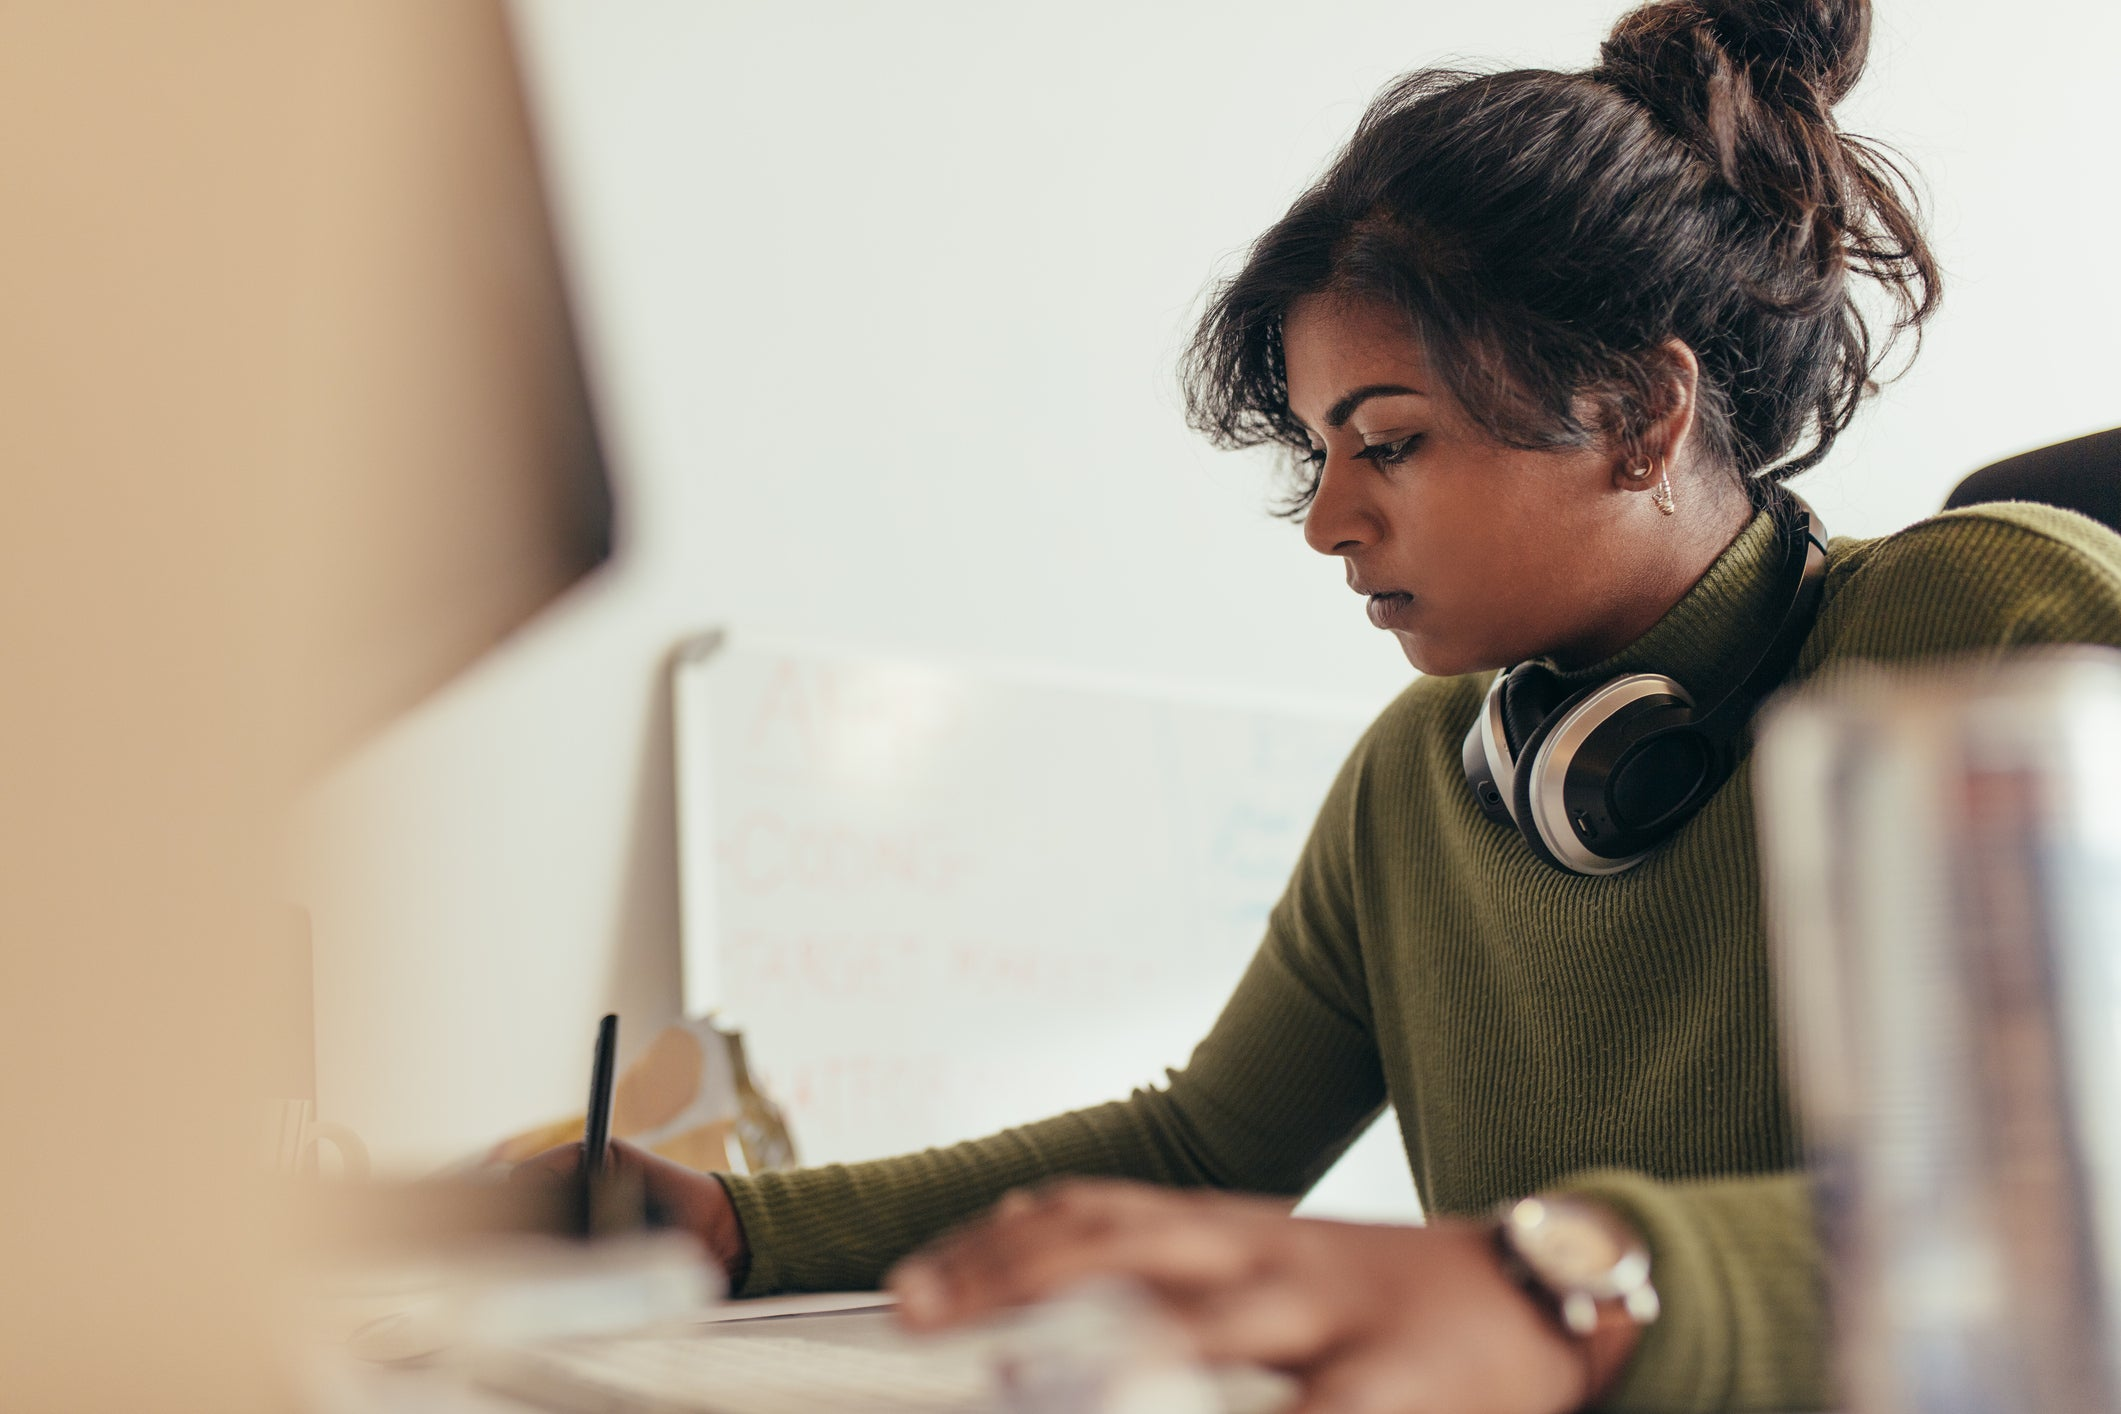 A young woman writing at a desk with headphones hanging around her neck.